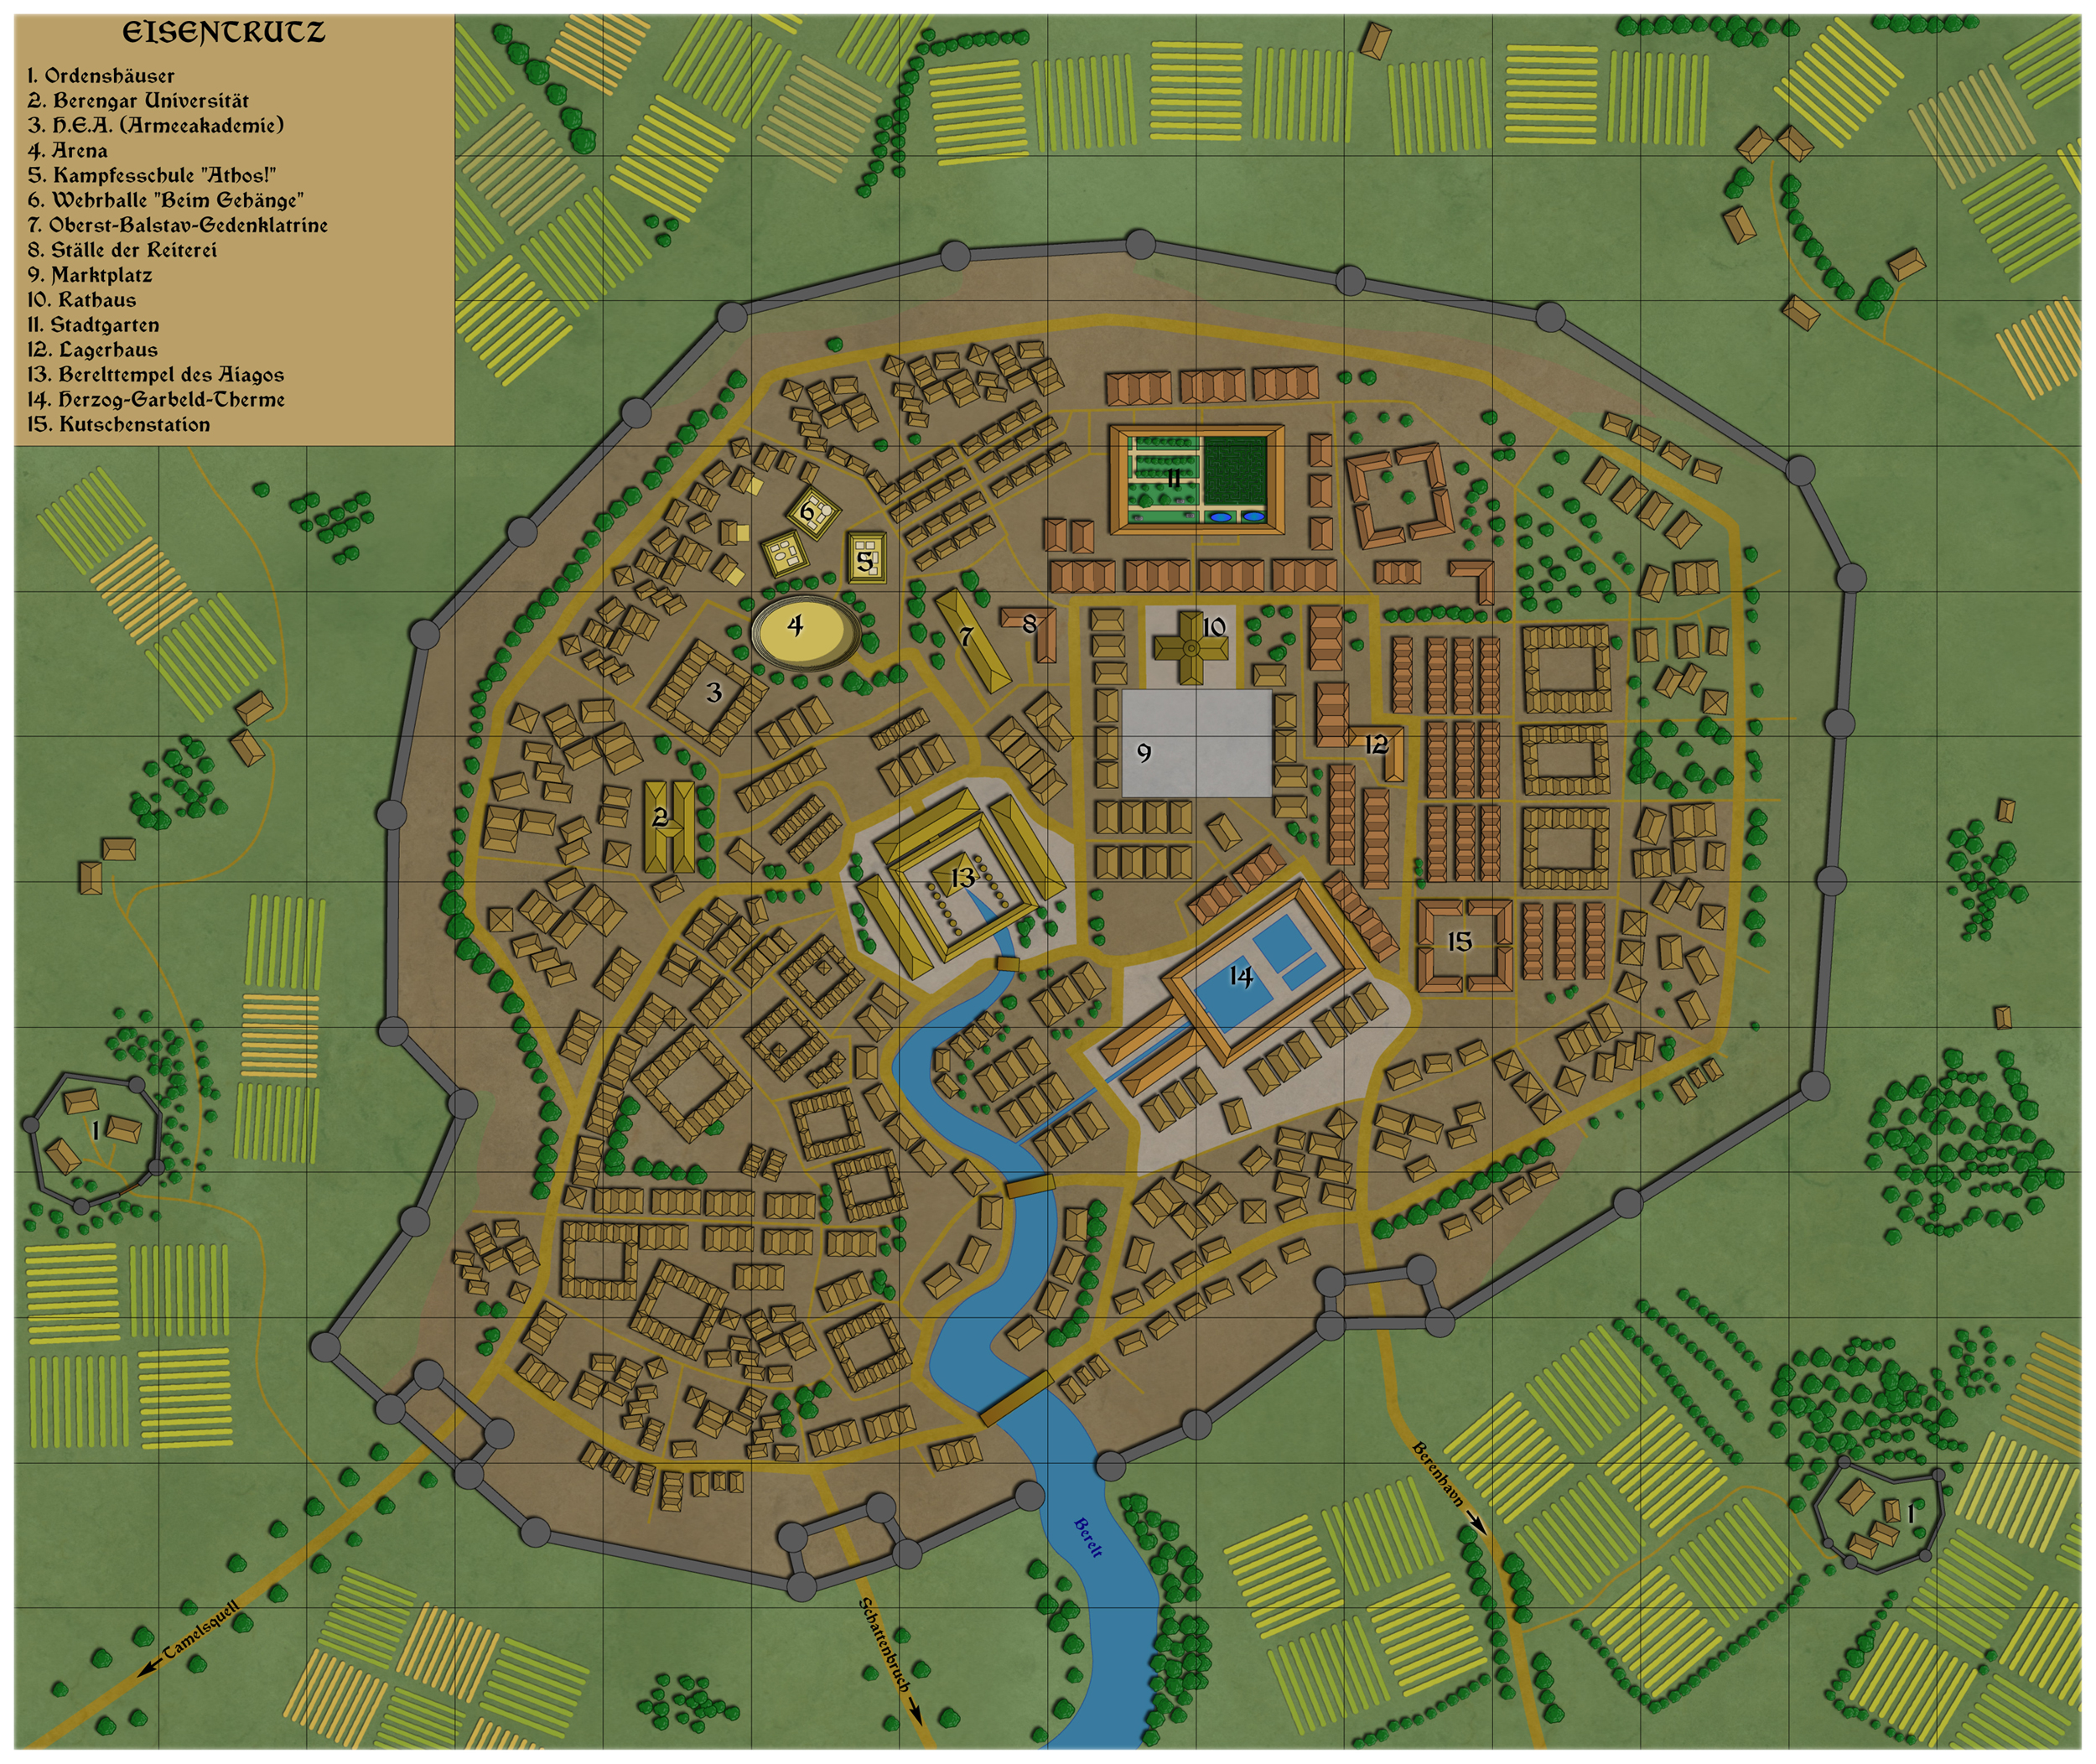 Freelance artist/cartographer available for commissions